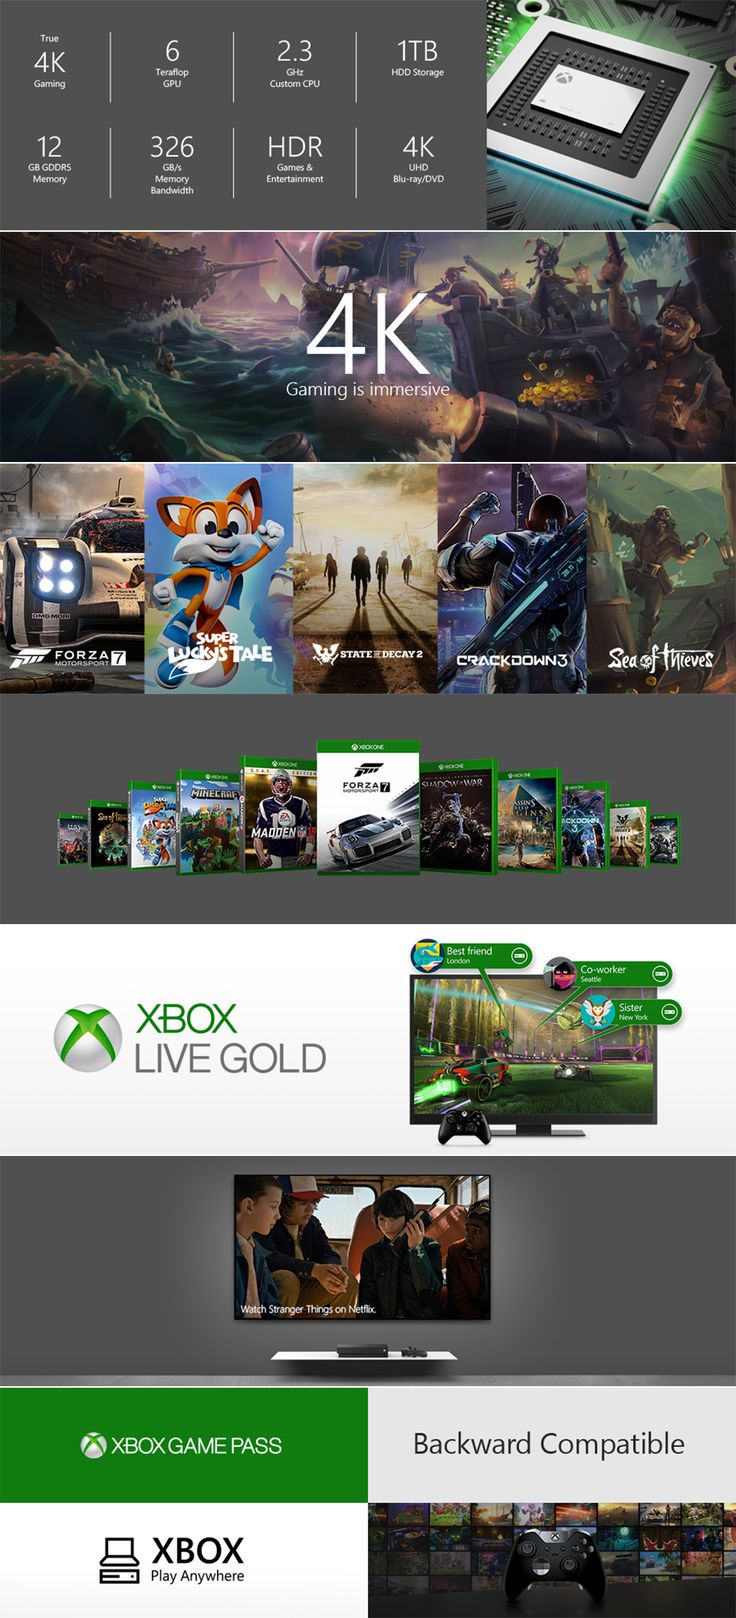 And remember xbox live gold is more than just great deals on games - Xbox One X On Xbox One Game